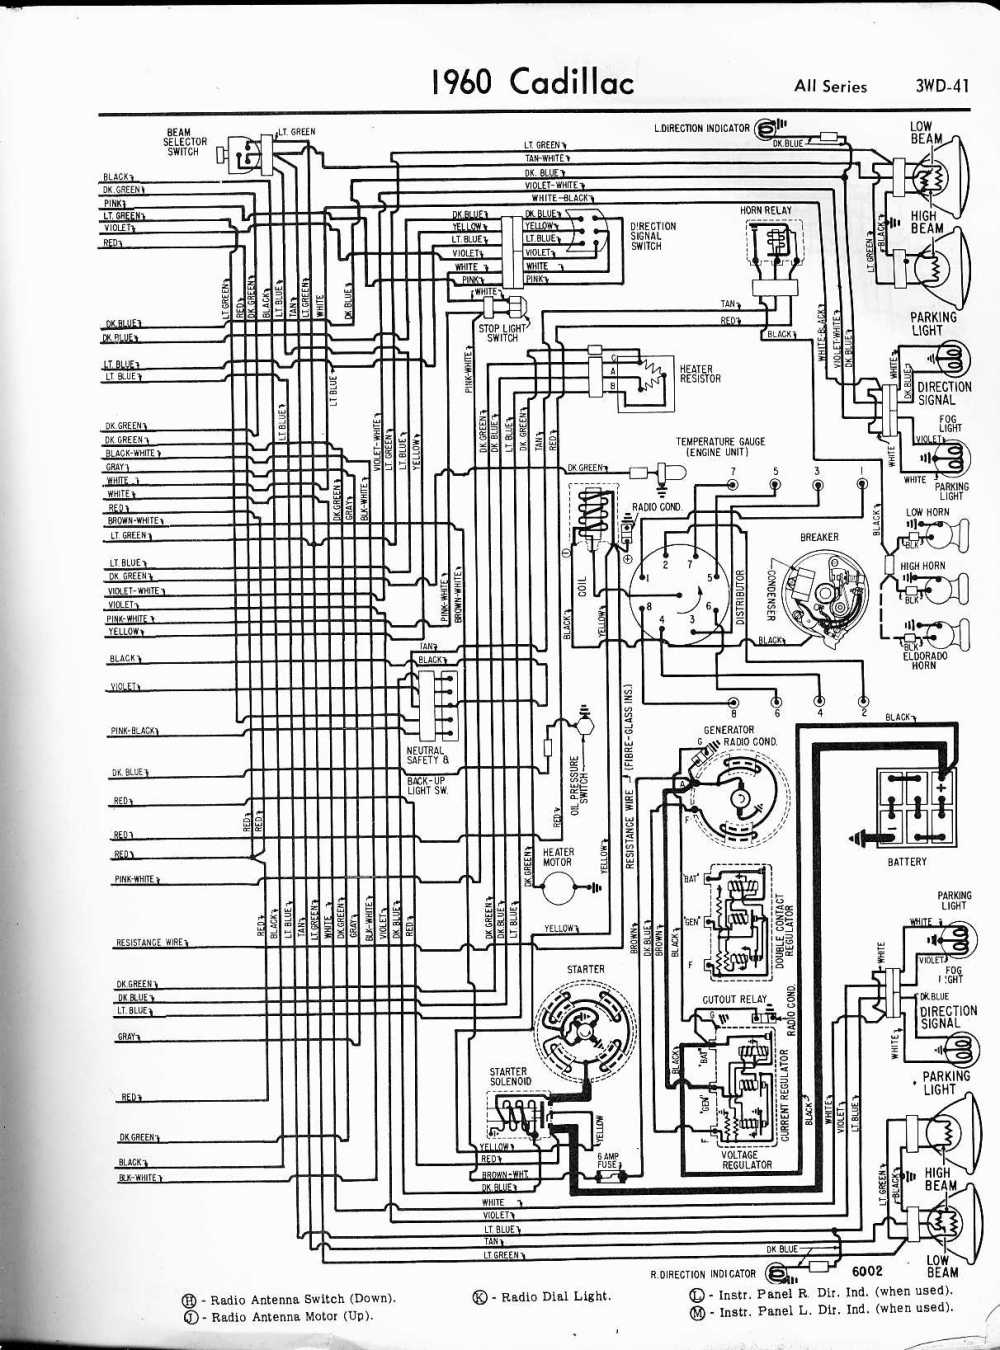 medium resolution of 1960 cadillac wiring harness wiring diagrams konsult 1957 cadillac wiring harness cadillac wiring diagrams 1957 1965